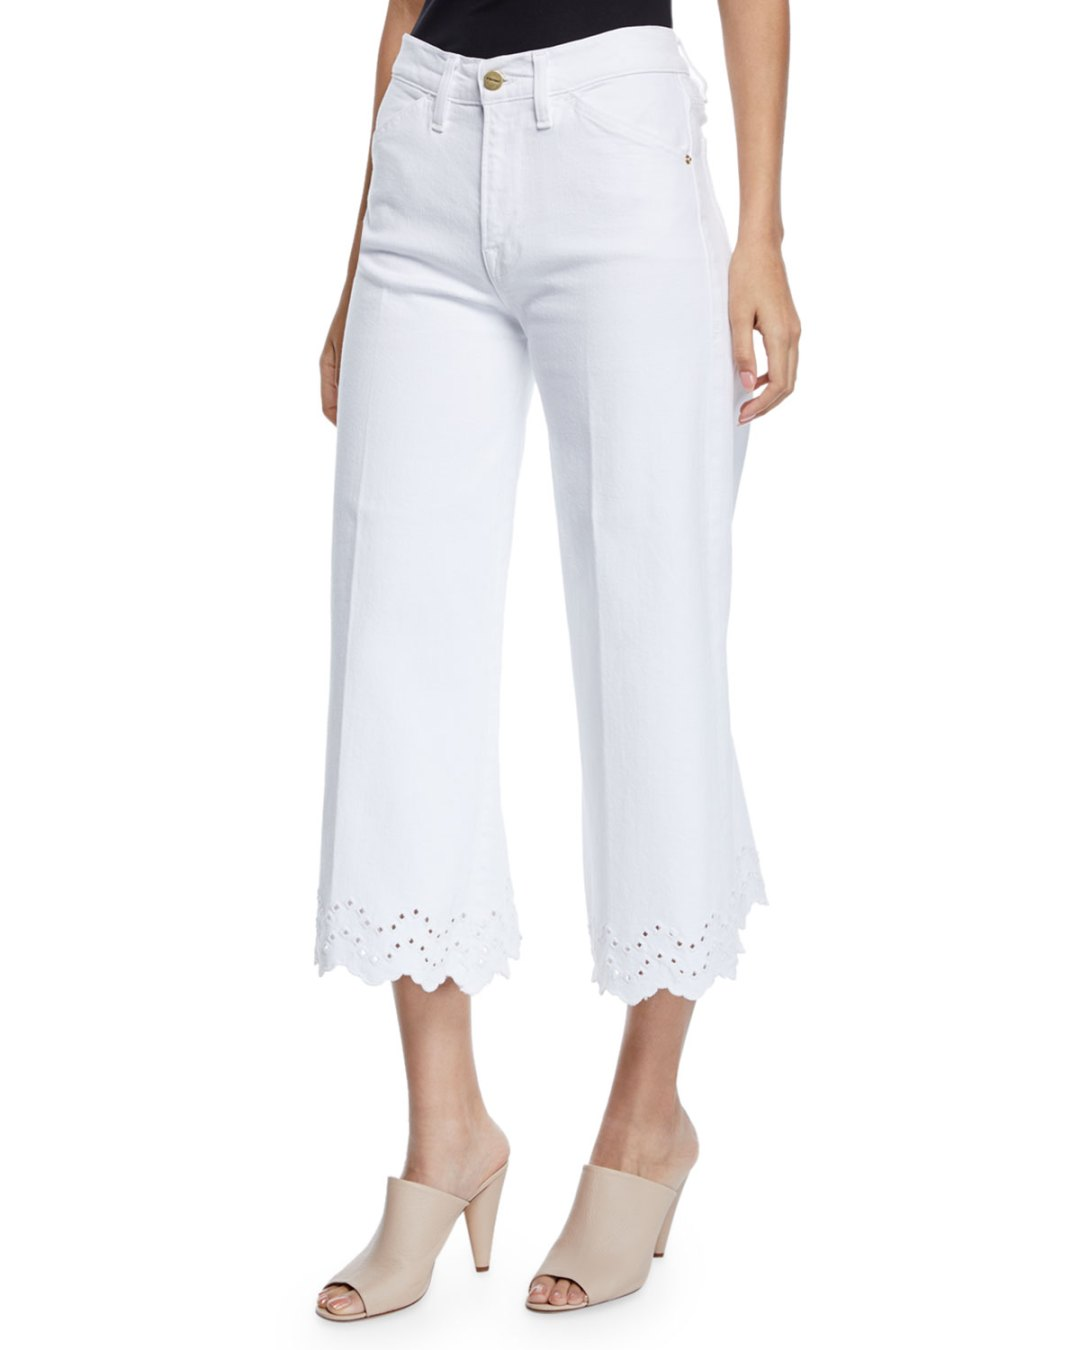 sports shoes c7393 0fb5f Neiman Marcus – Schiffly Vintage High-Rise Cropped Jeans with Eyelet Hem –   265.00